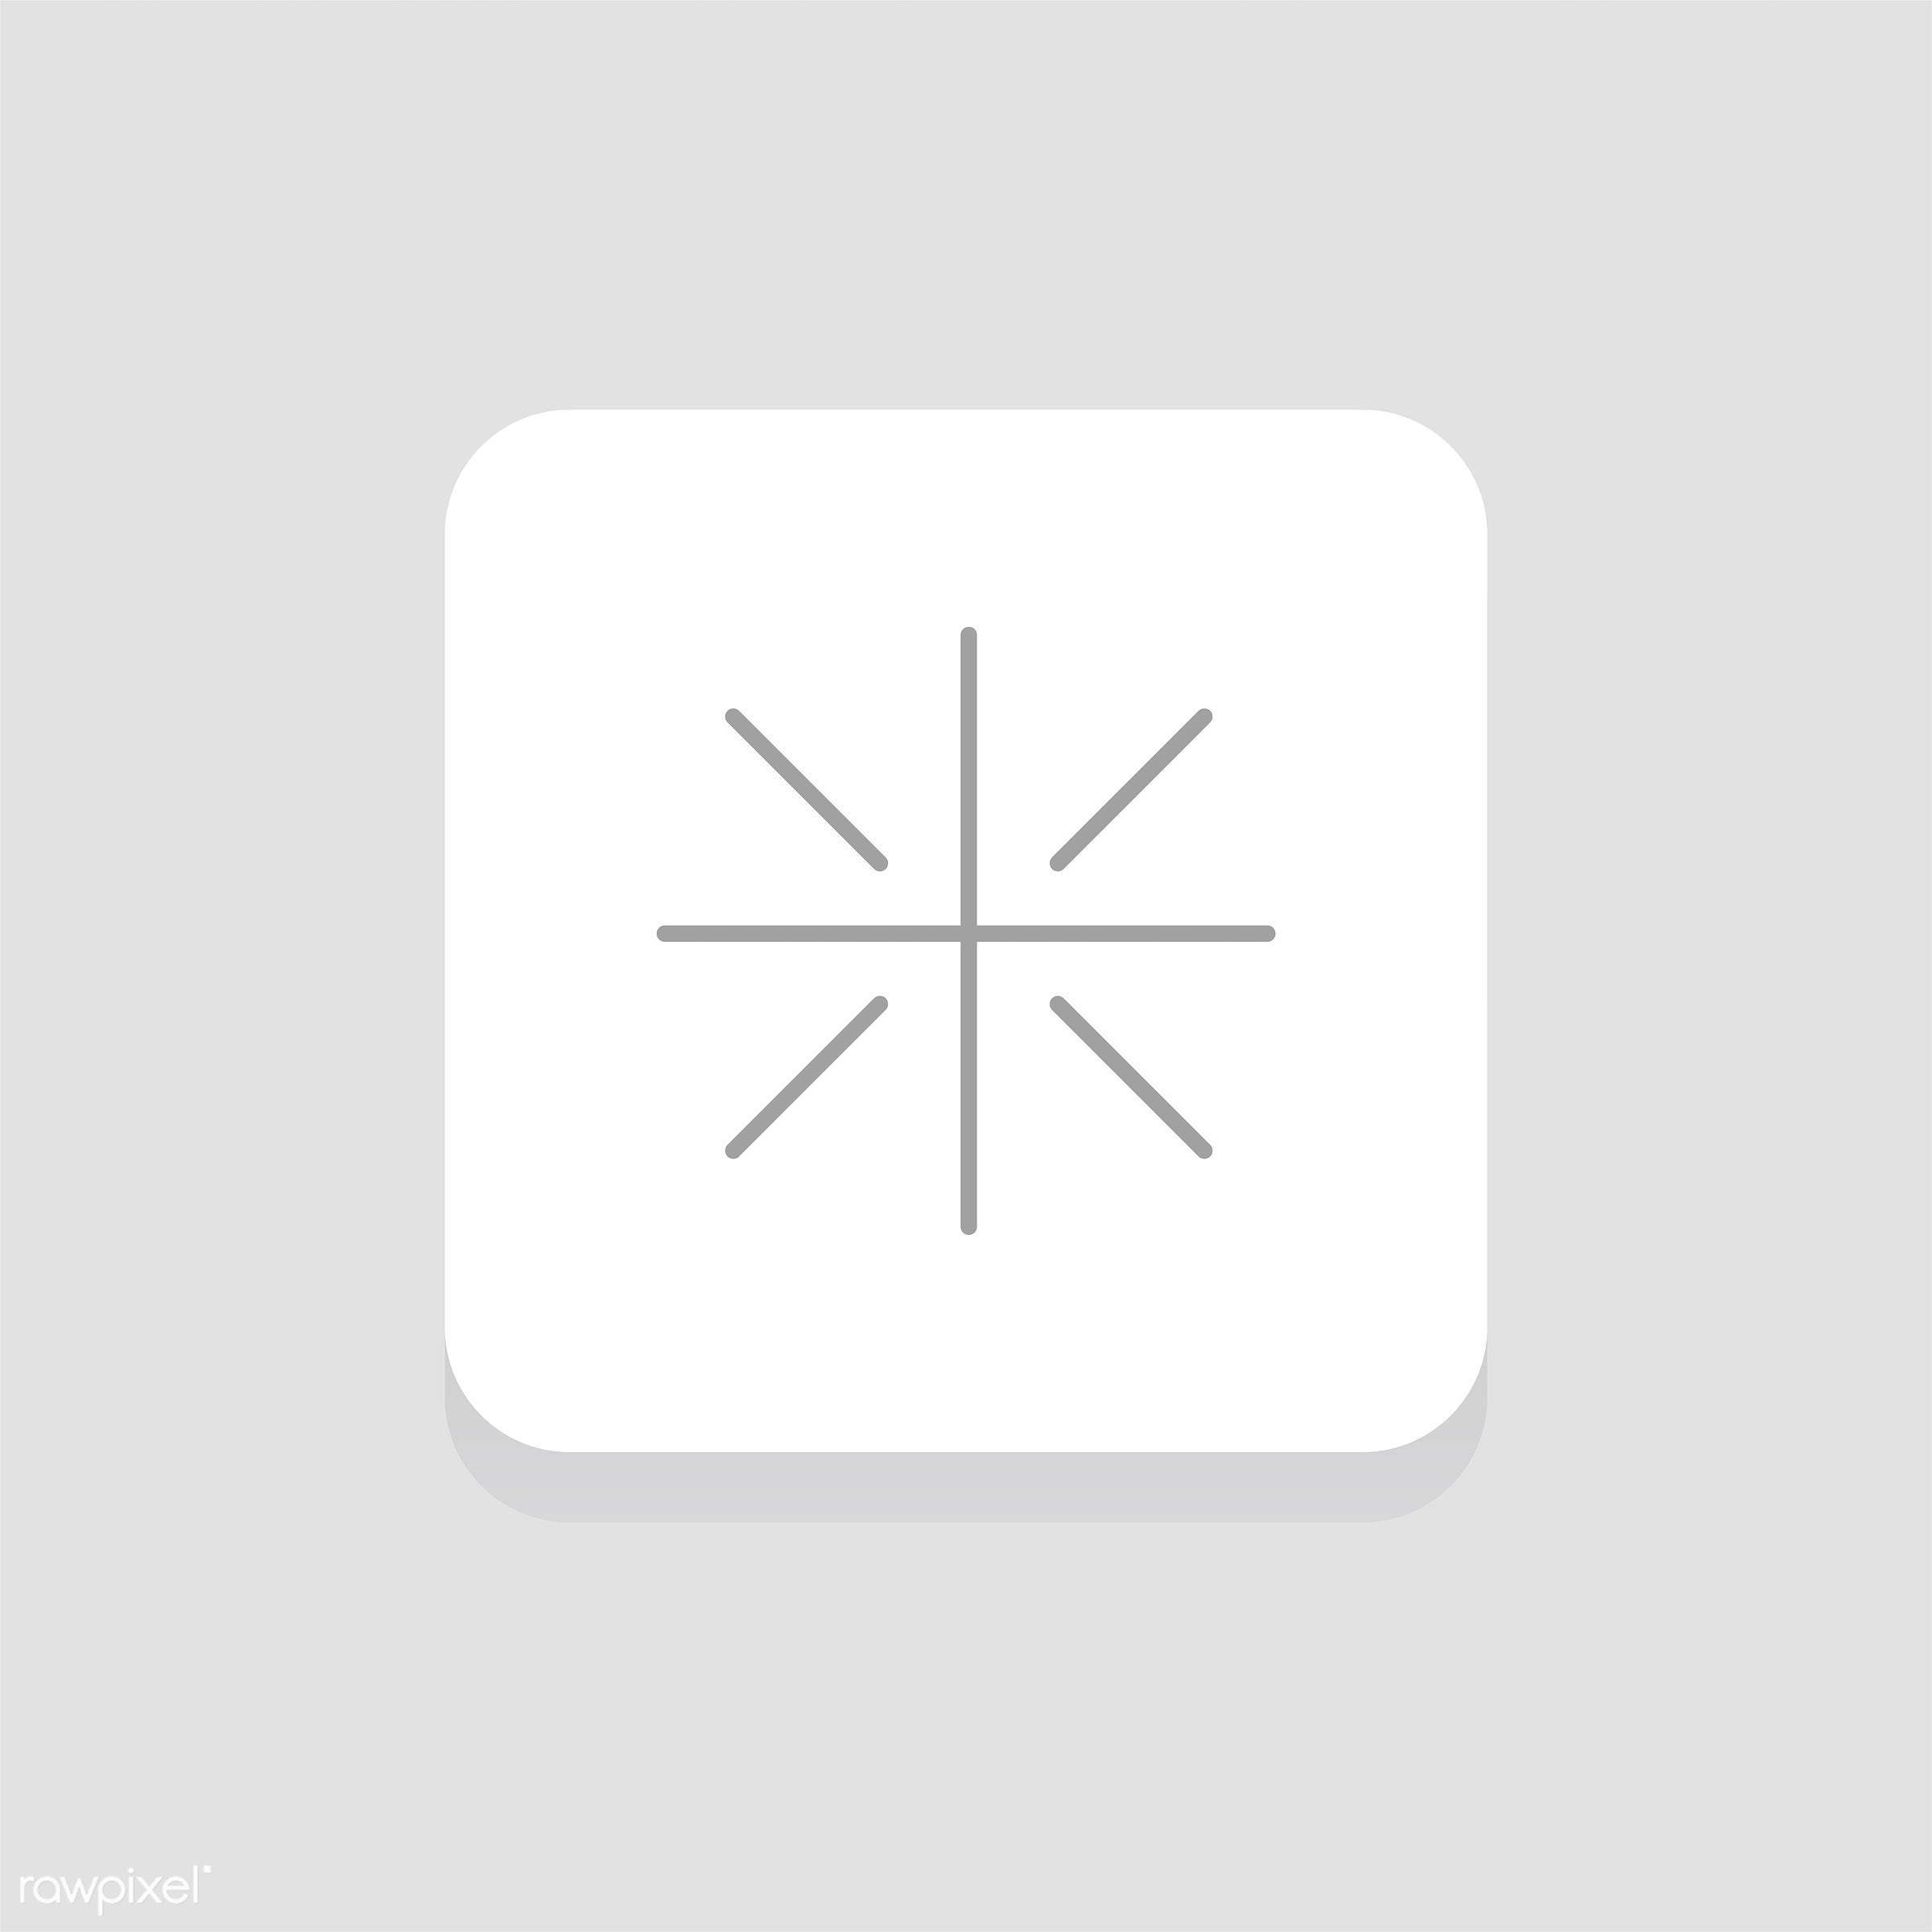 Vector of website icon - button, design, flat, graphic, icon, illustration, isolated, layout, sign, style, symbol, vector,...